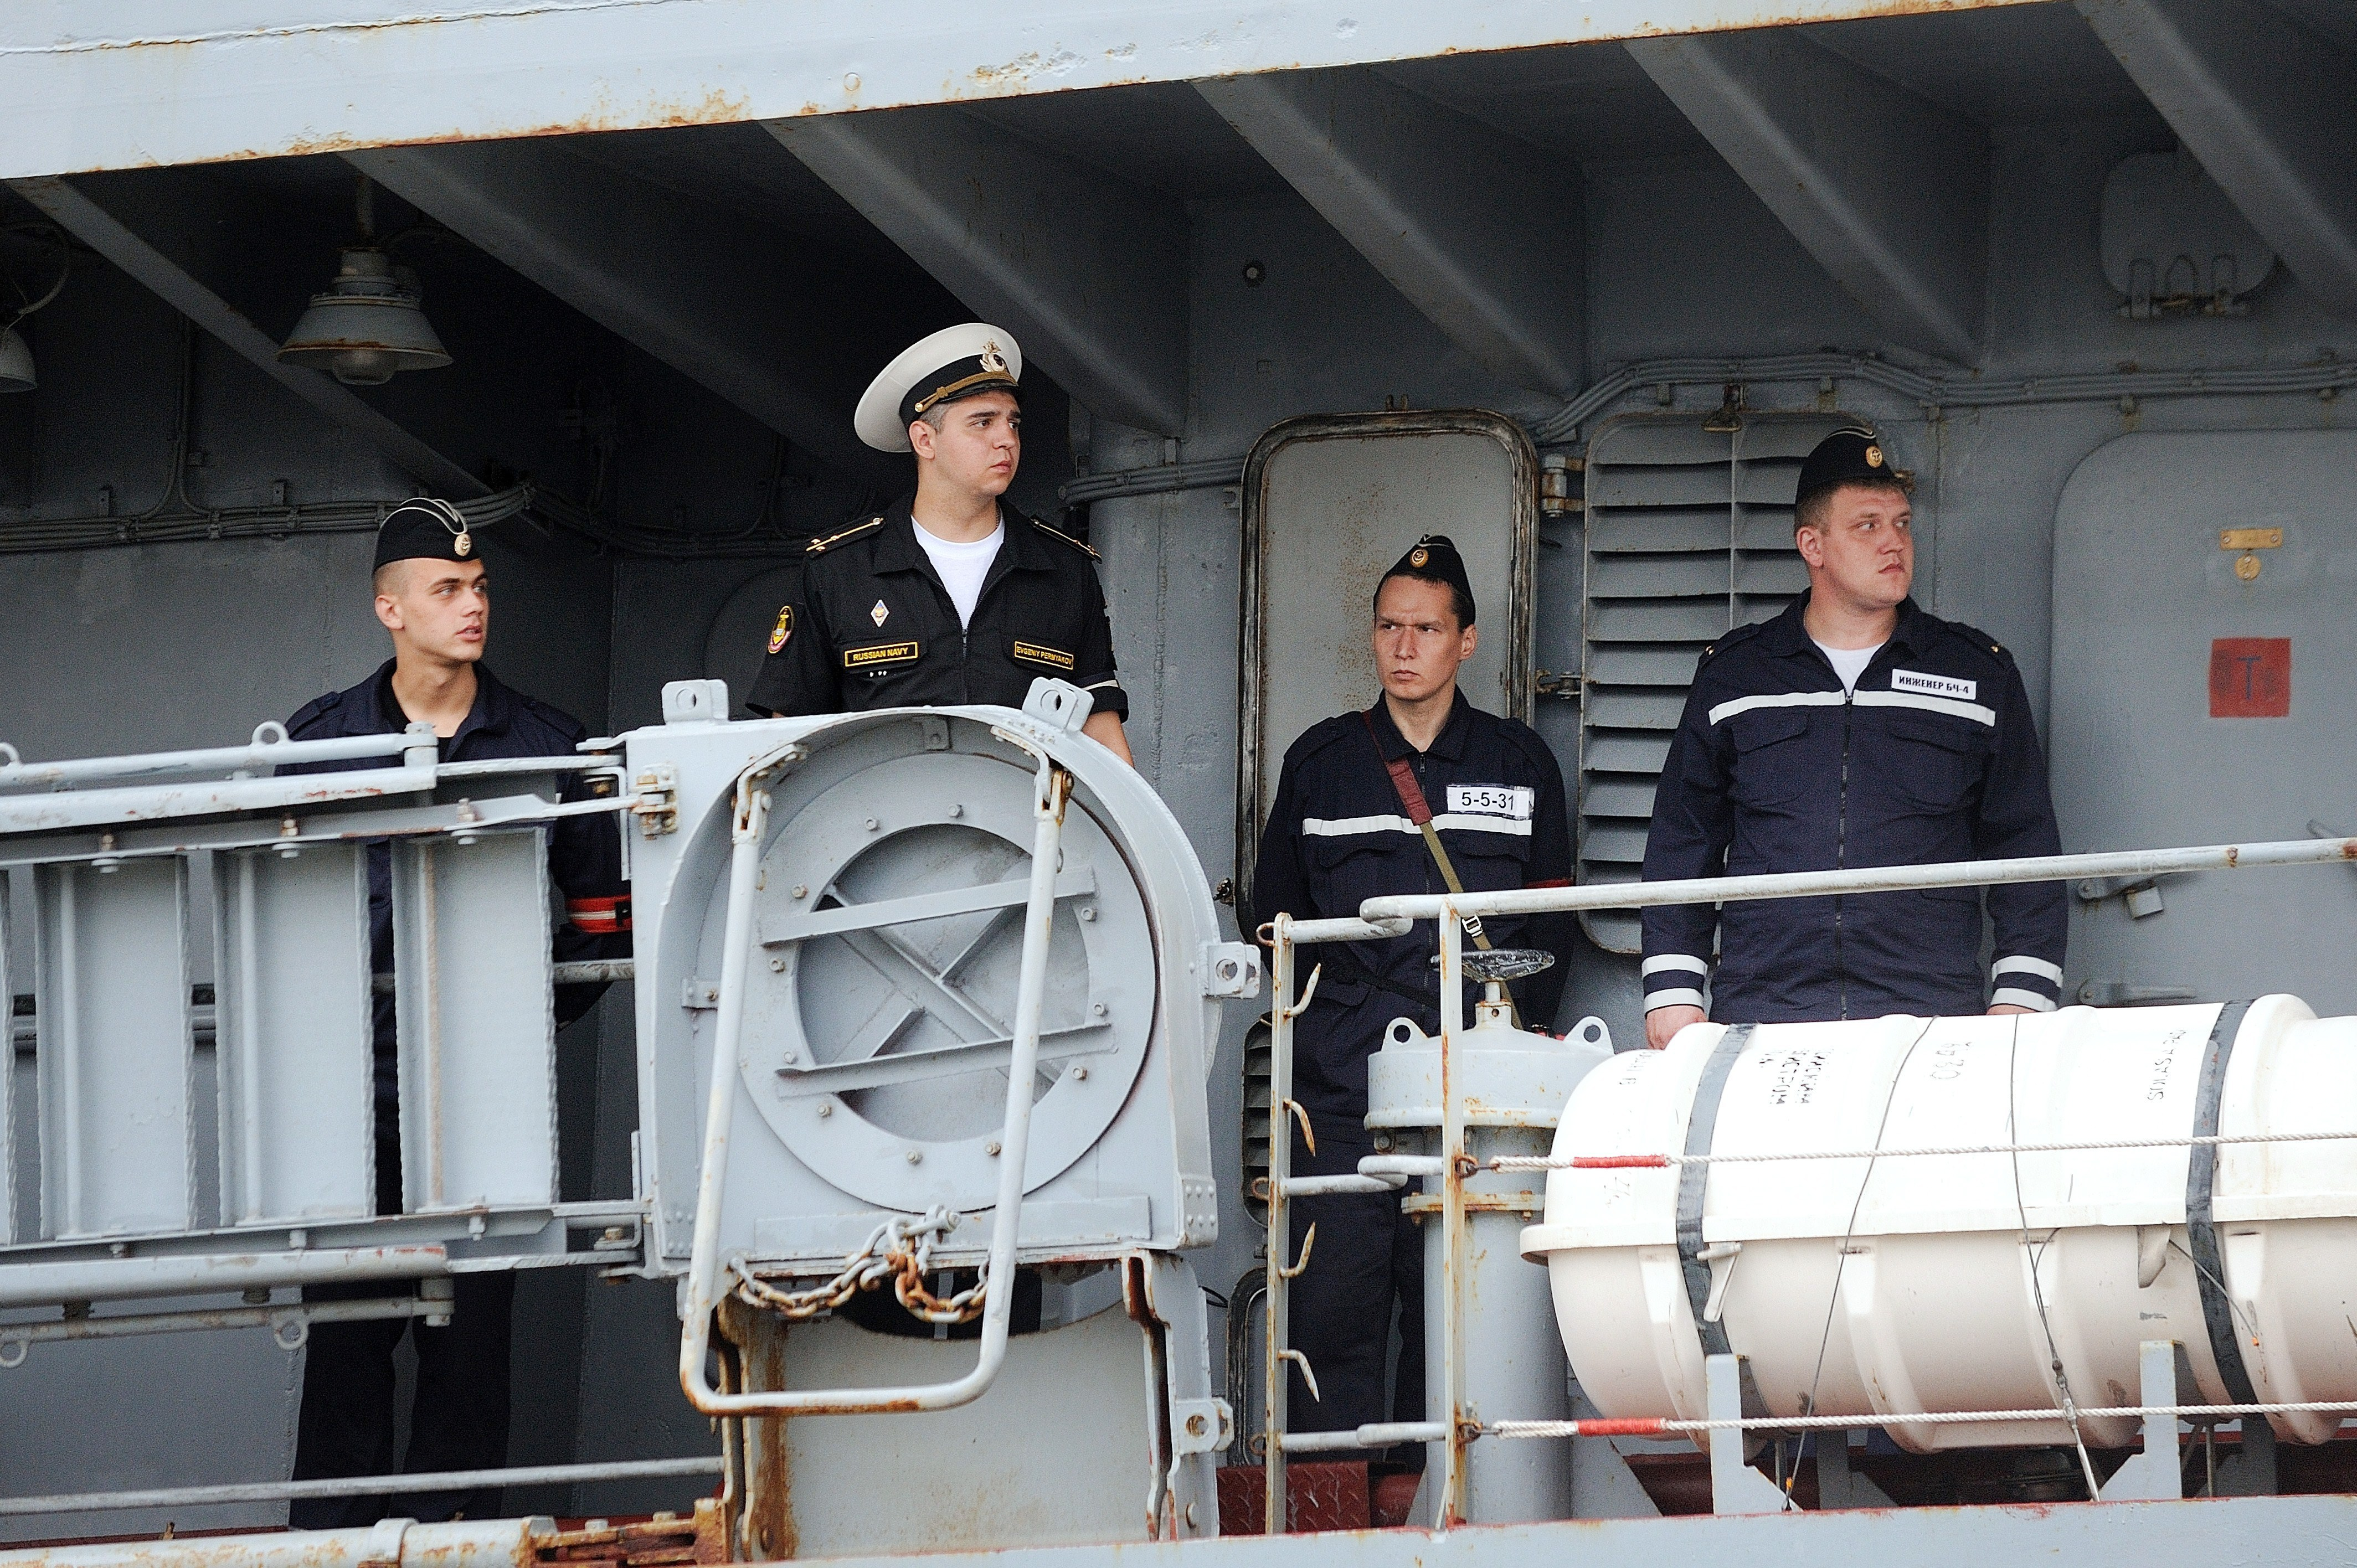 Russian sailors arrive in St. Nazaire aboard the Smolniy on June 30. They are among the 400 Russian sailors will be trained on the Vladivostok -- and who will sail the ship back to Russia.